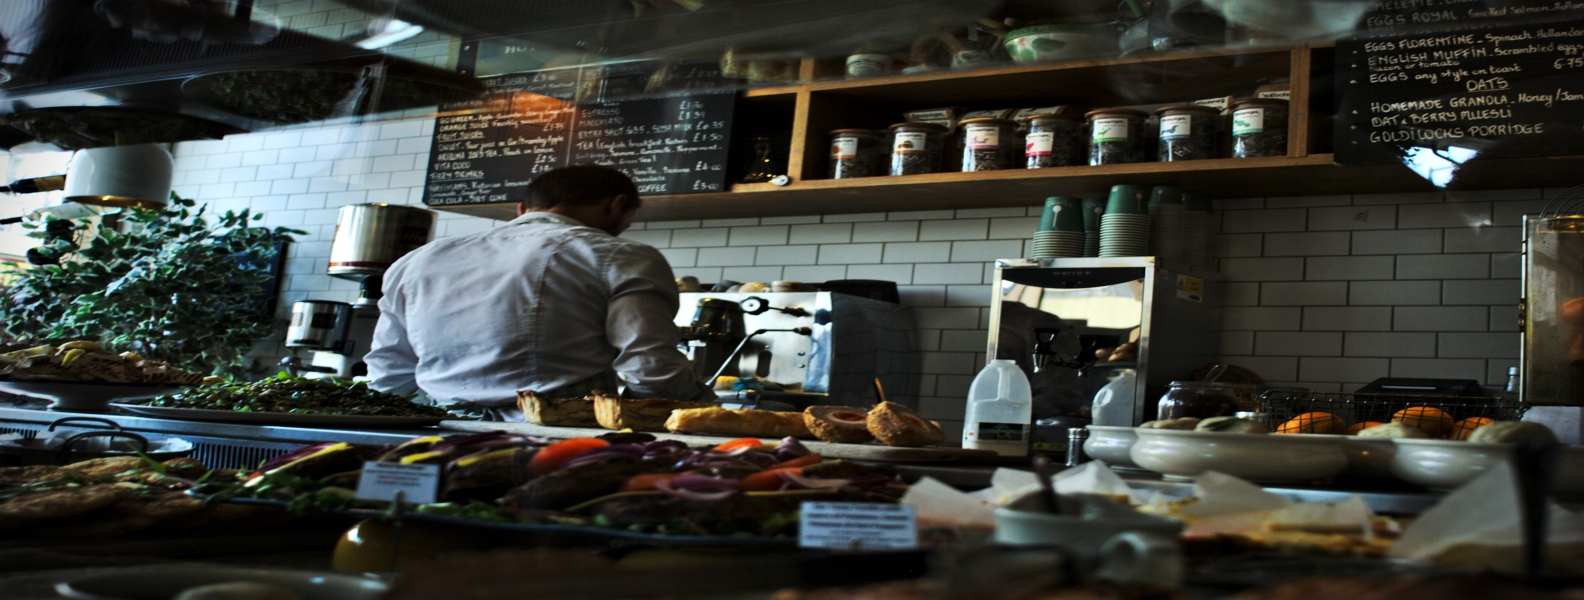 9 Must-Have Restaurant Technologies That Improve Business